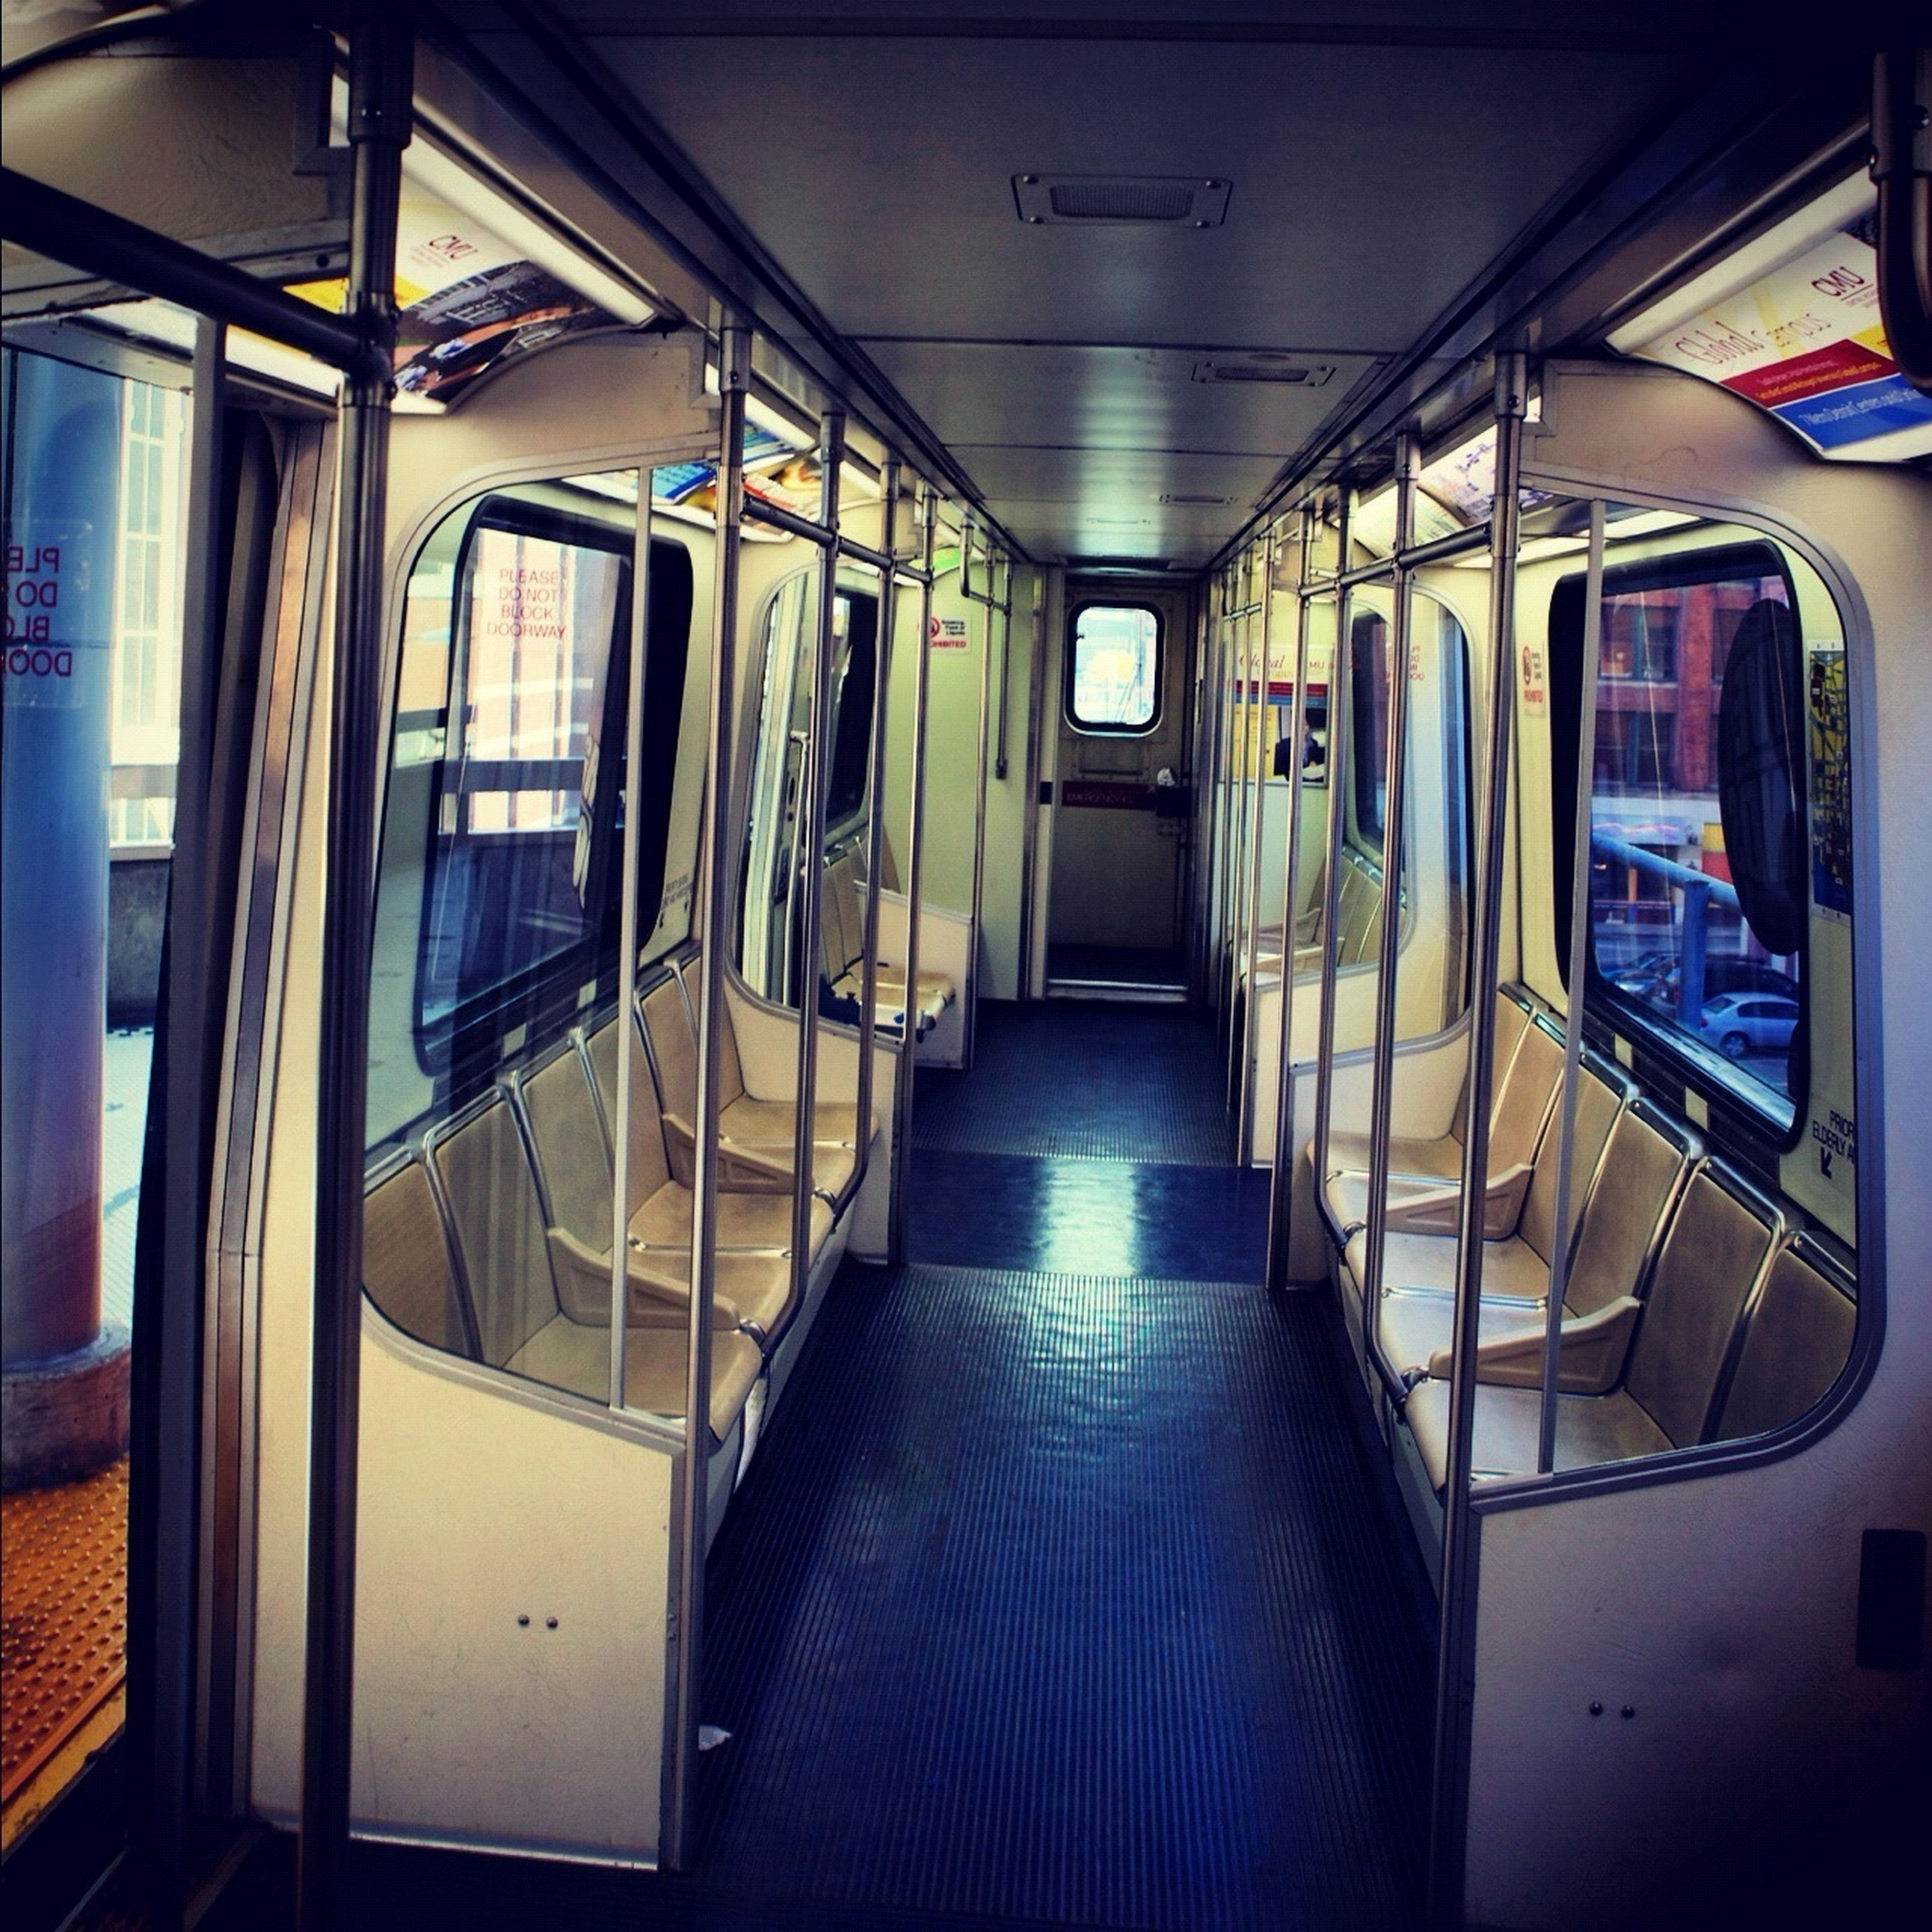 indoors, transportation, vehicle seat, window, public transportation, vehicle interior, mode of transport, interior, absence, passenger train, train - vehicle, reflection, escalator, rail transportation, travel, empty, glass - material, convenience, technology, train